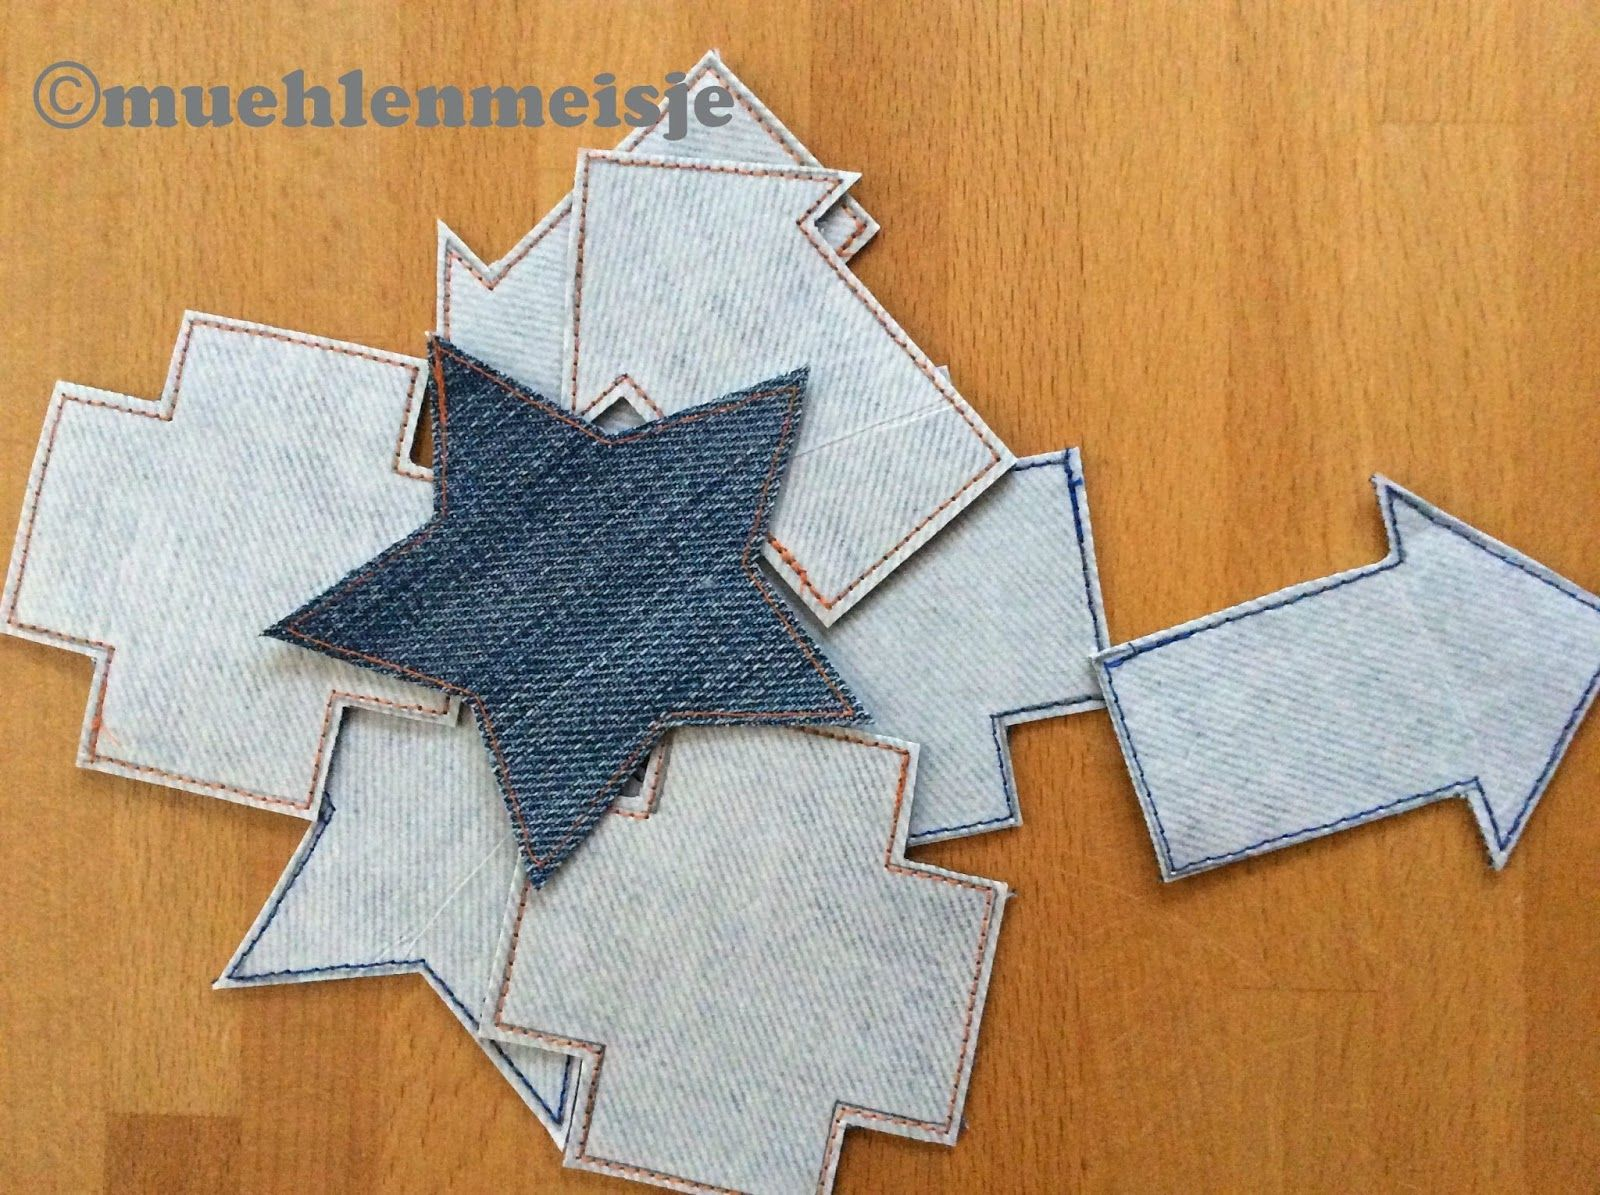 hosenflicken selbstgemacht handmade jeans patches. Black Bedroom Furniture Sets. Home Design Ideas